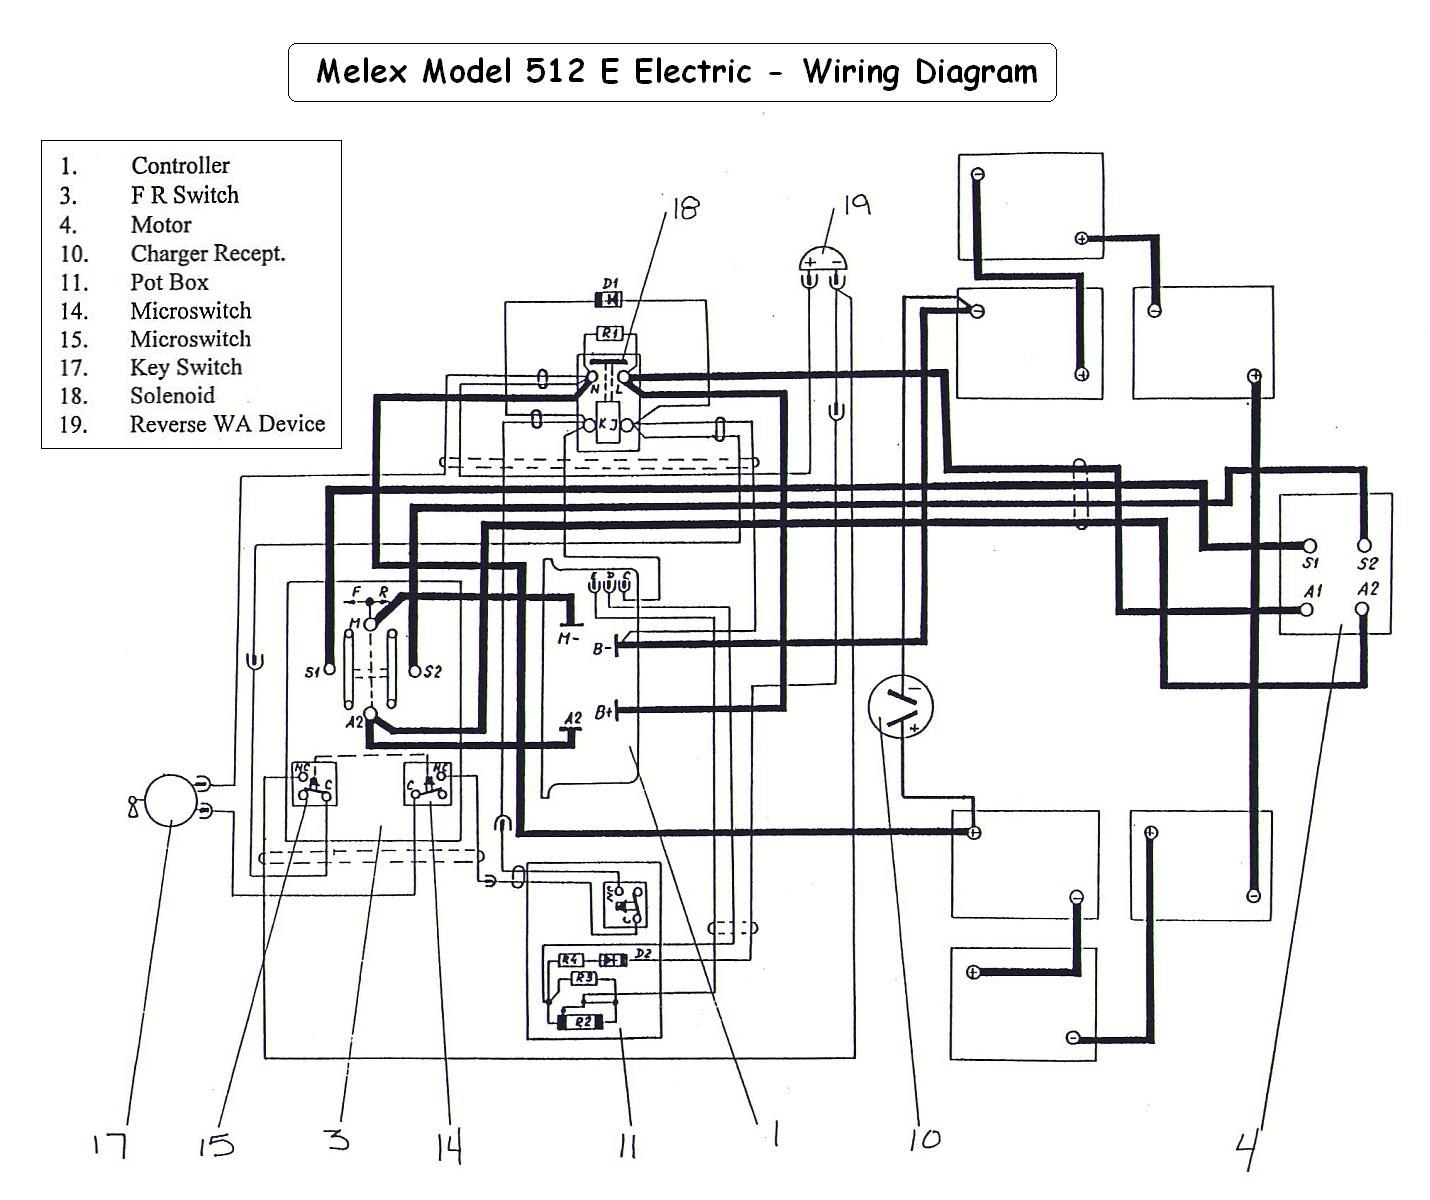 Melex512E_wiring_diagram melex golf cart wiring diagram cushman golf cart battery diagram wire harness assembly for a g2 golf cart at reclaimingppi.co